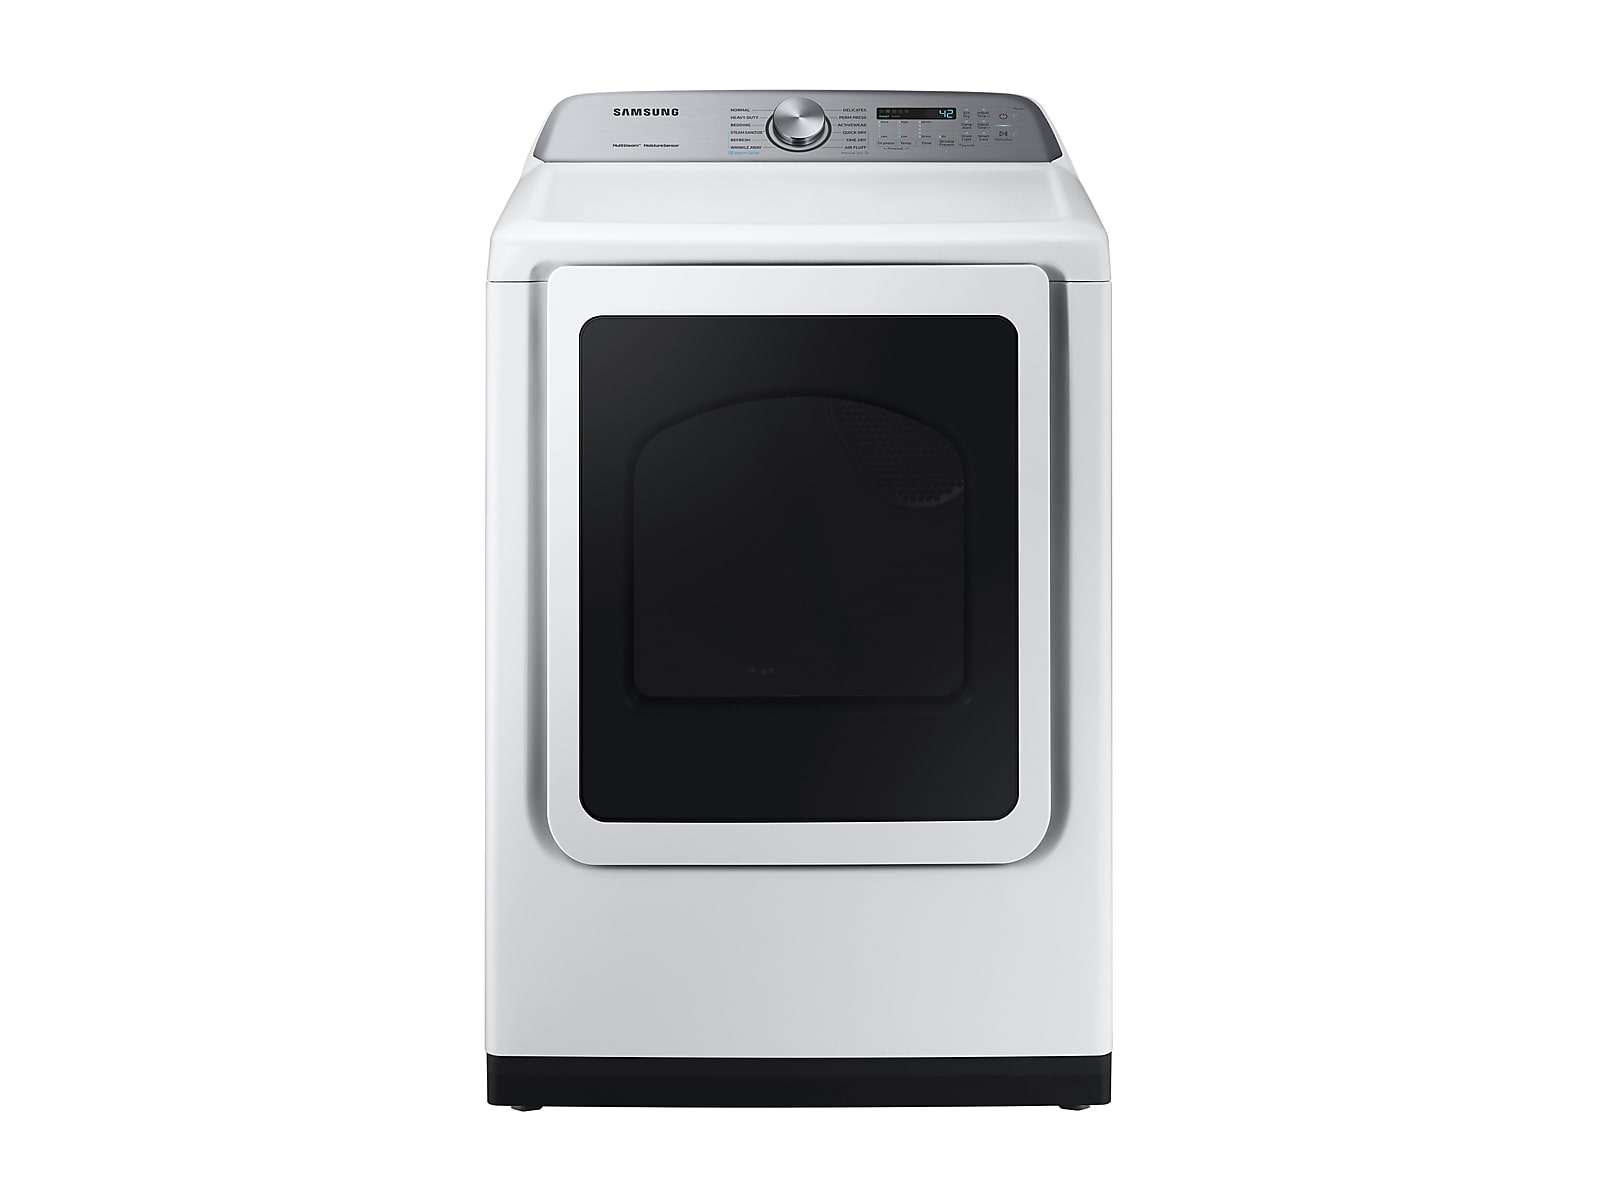 Samsung coupon: Samsung 7.4 cu. ft. Electric Dryer with Steam Sanitize+ in White(DVE50R5400W/A3)